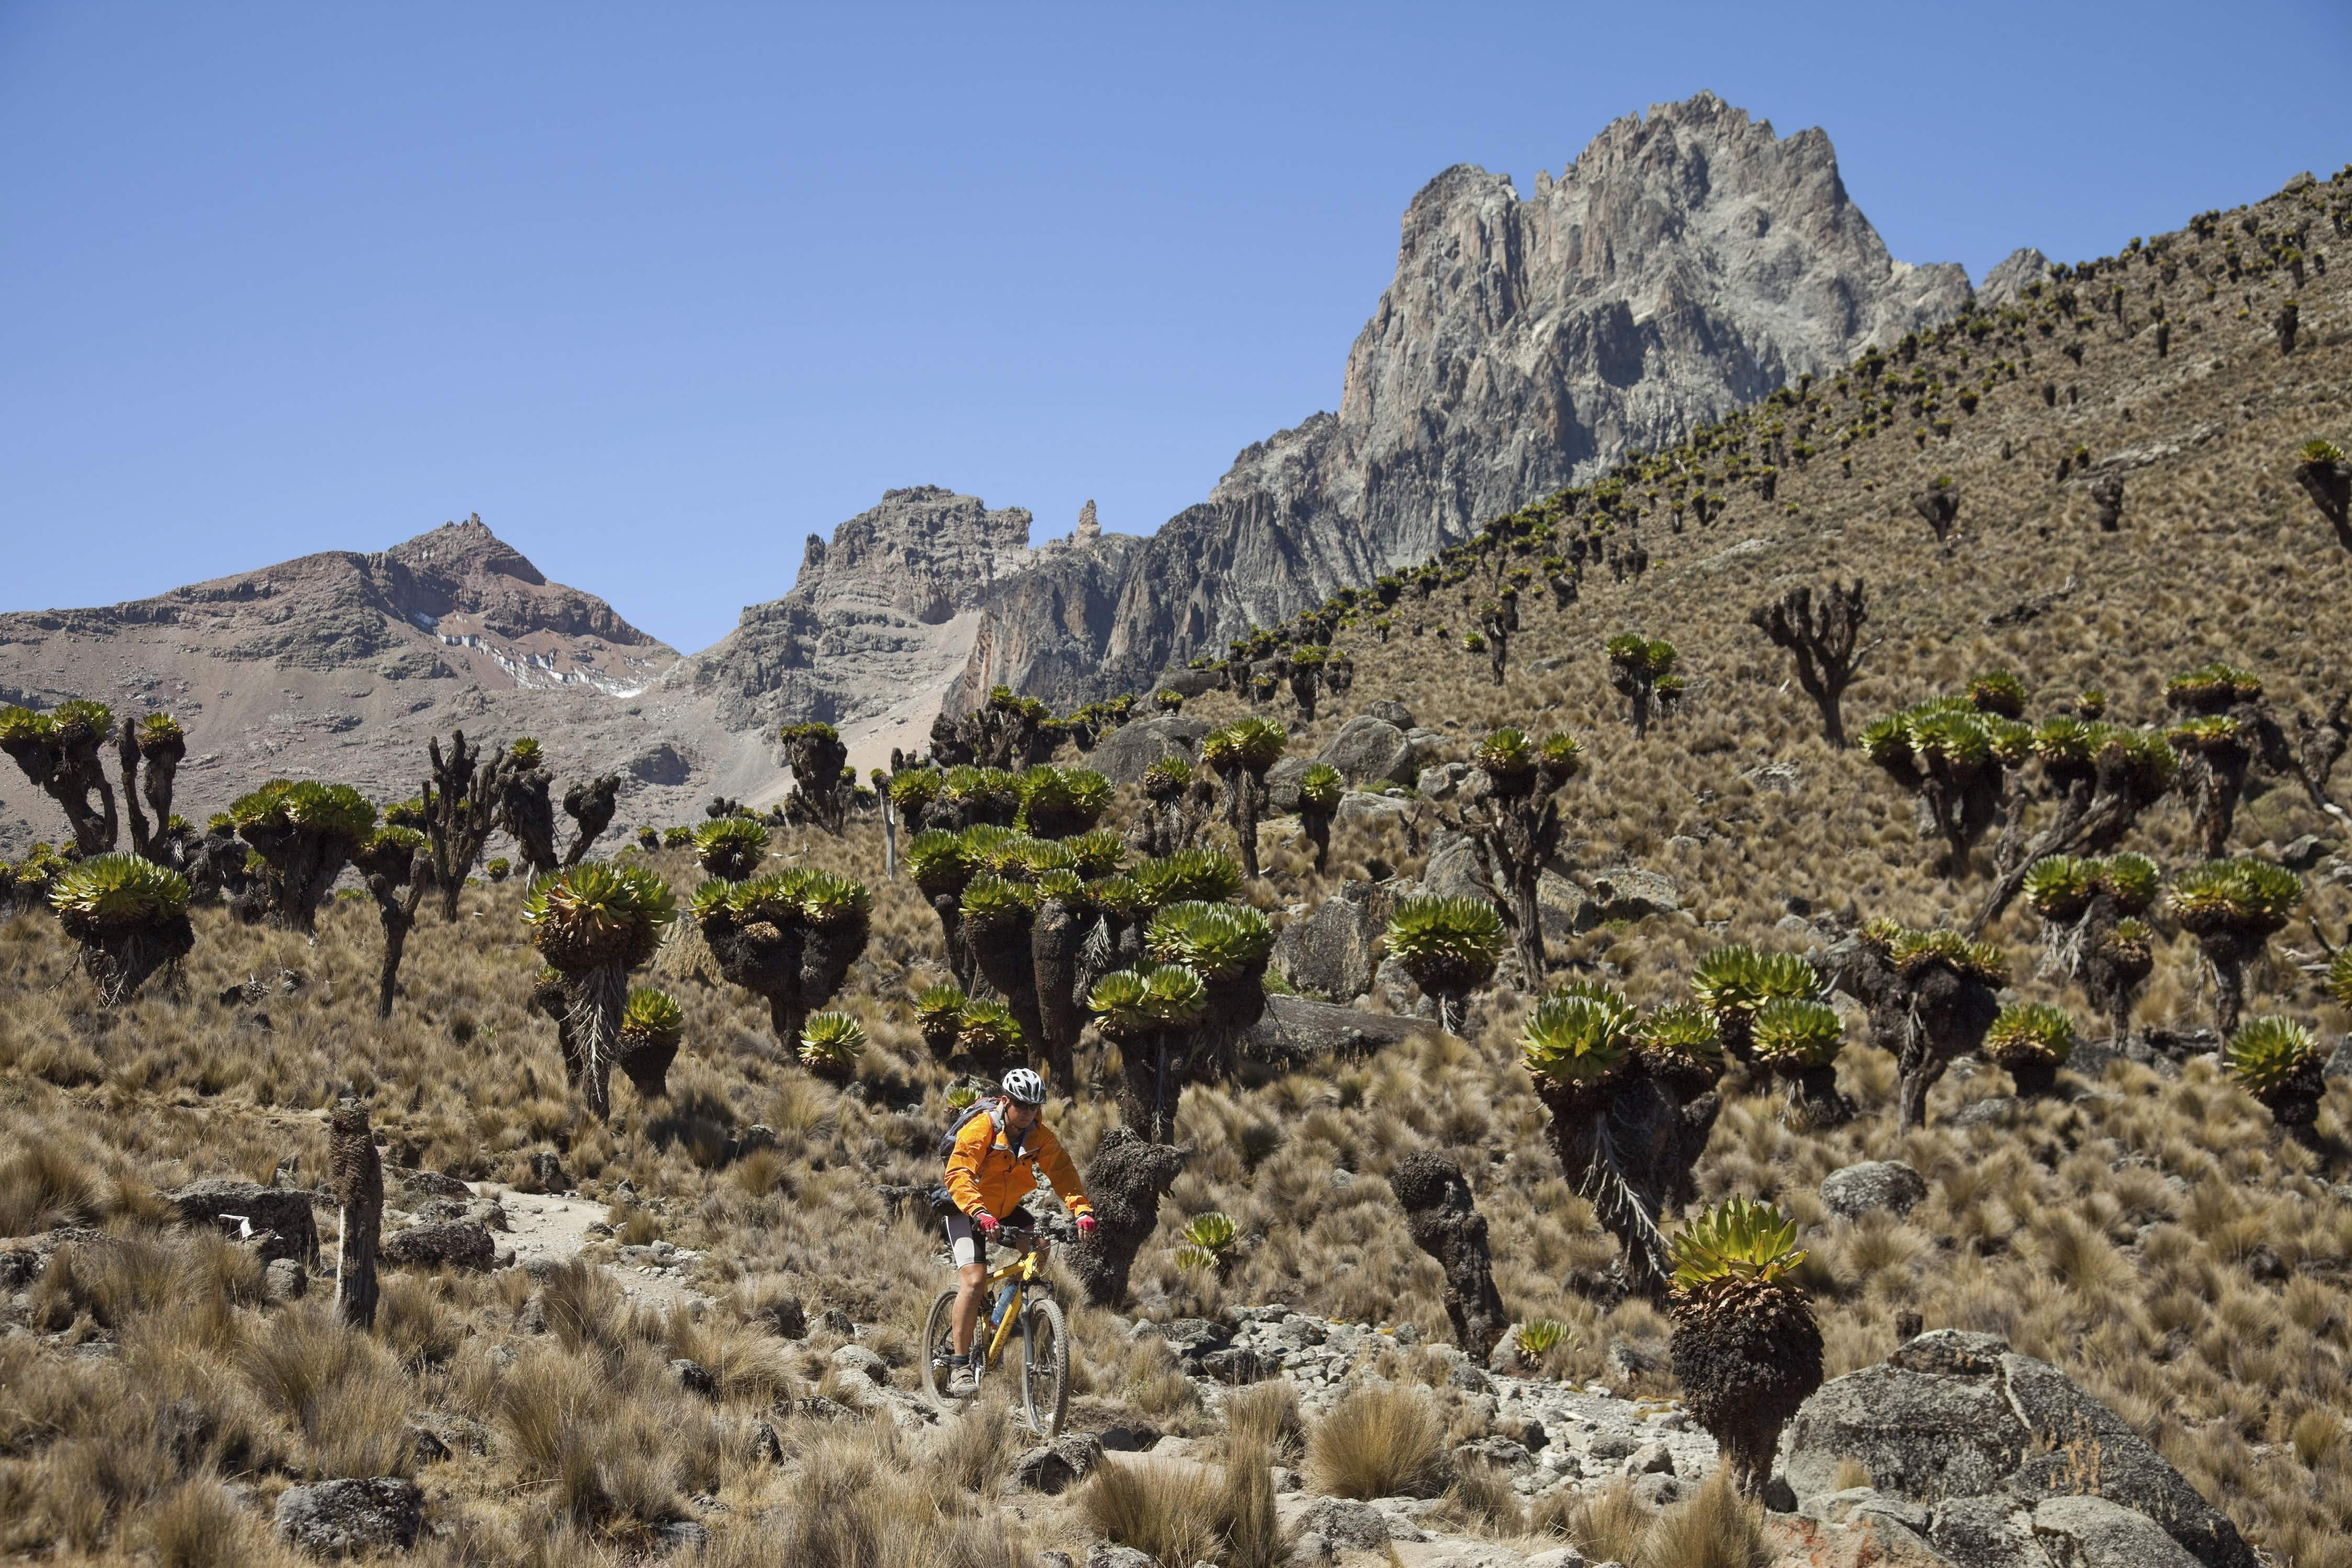 The slopes of Mt Kenya offer challenging trails to mountain bikers © Alexander Fortelny / Getty Images